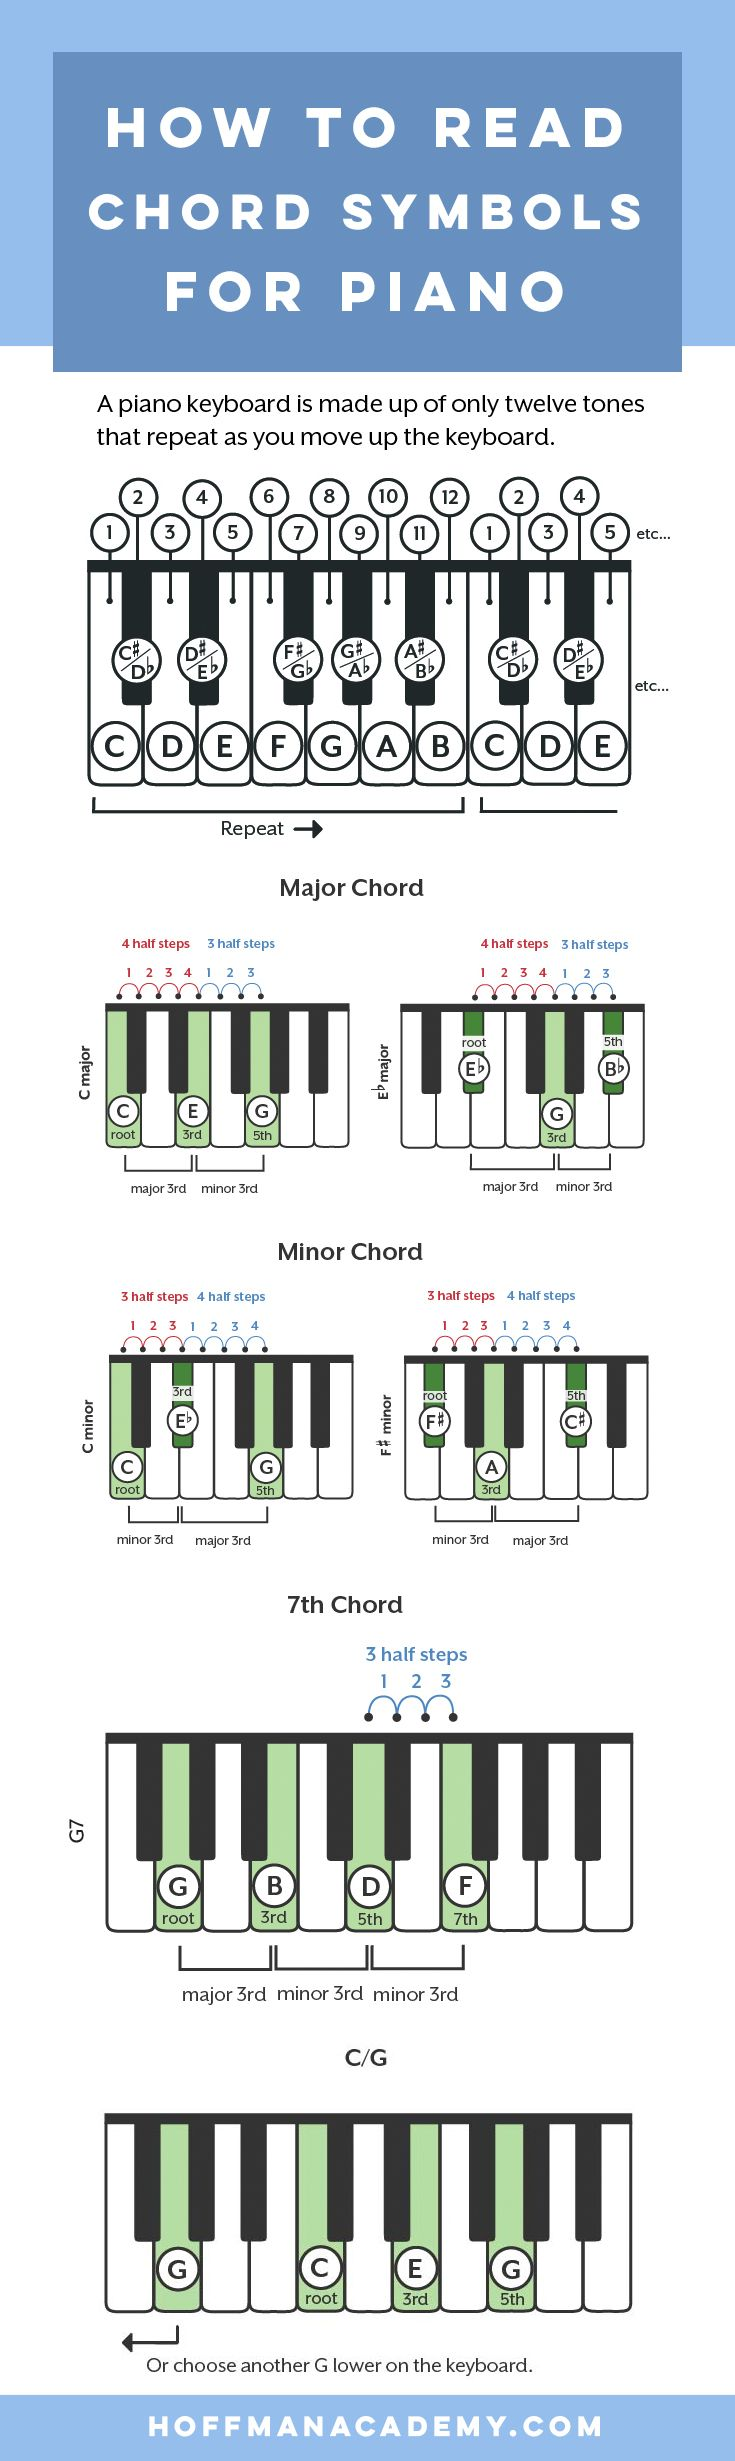 How to read and play piano chords pianos symbols and plays how to read and play piano chords hexwebz Images